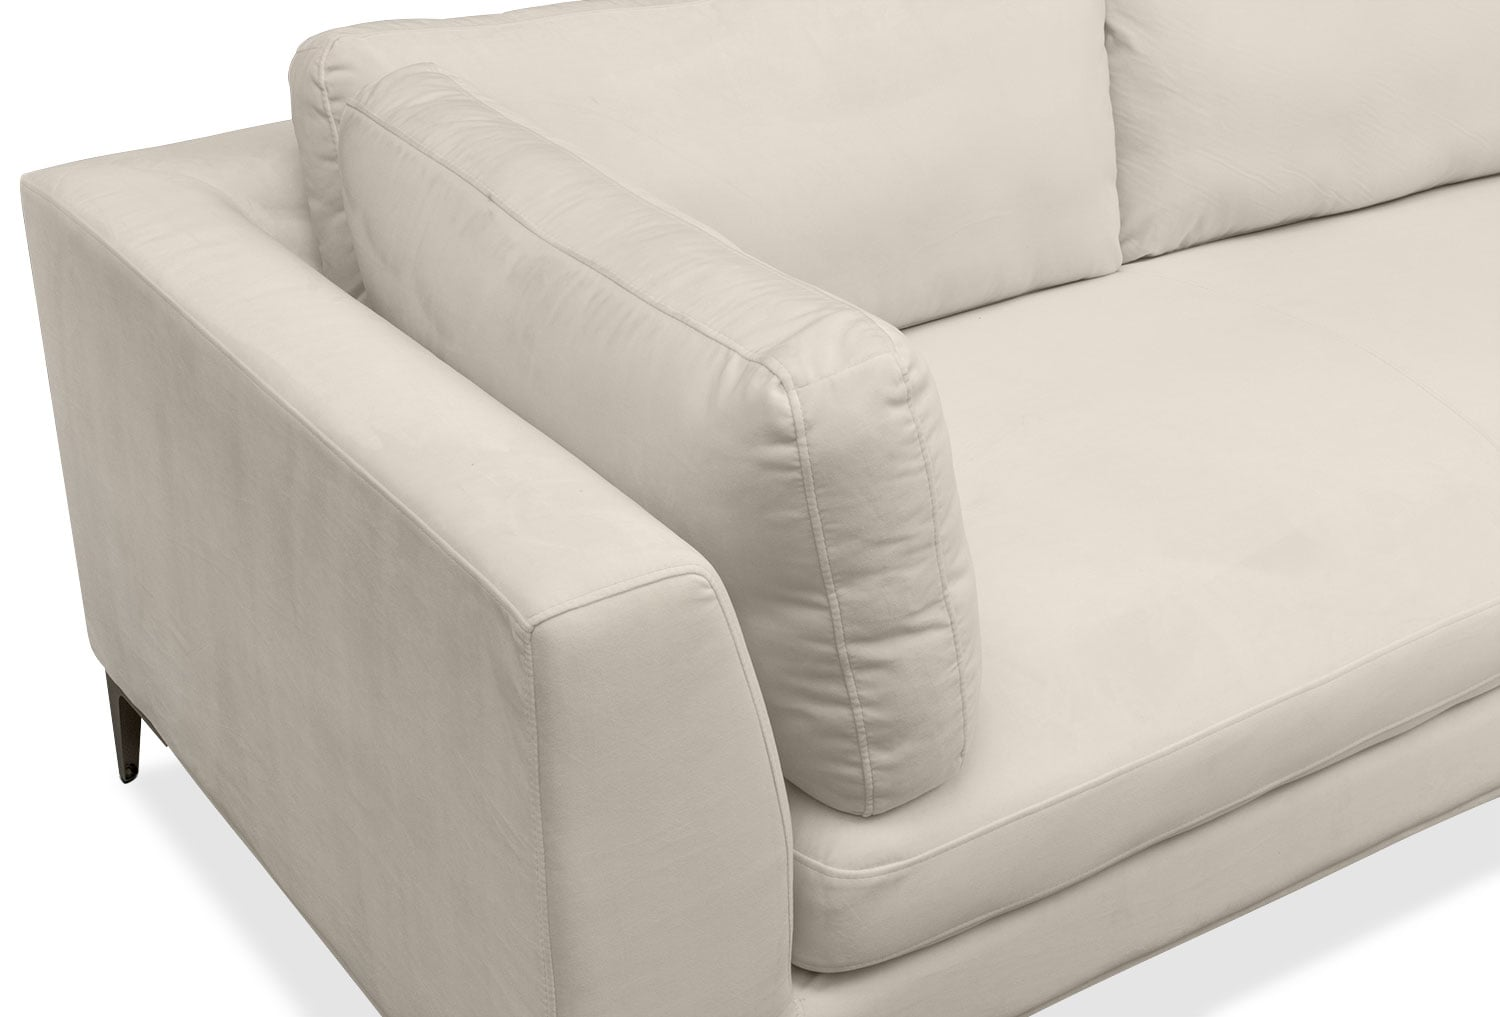 with design chair modern cuddler leather venture white moorings lane recliner captain faux